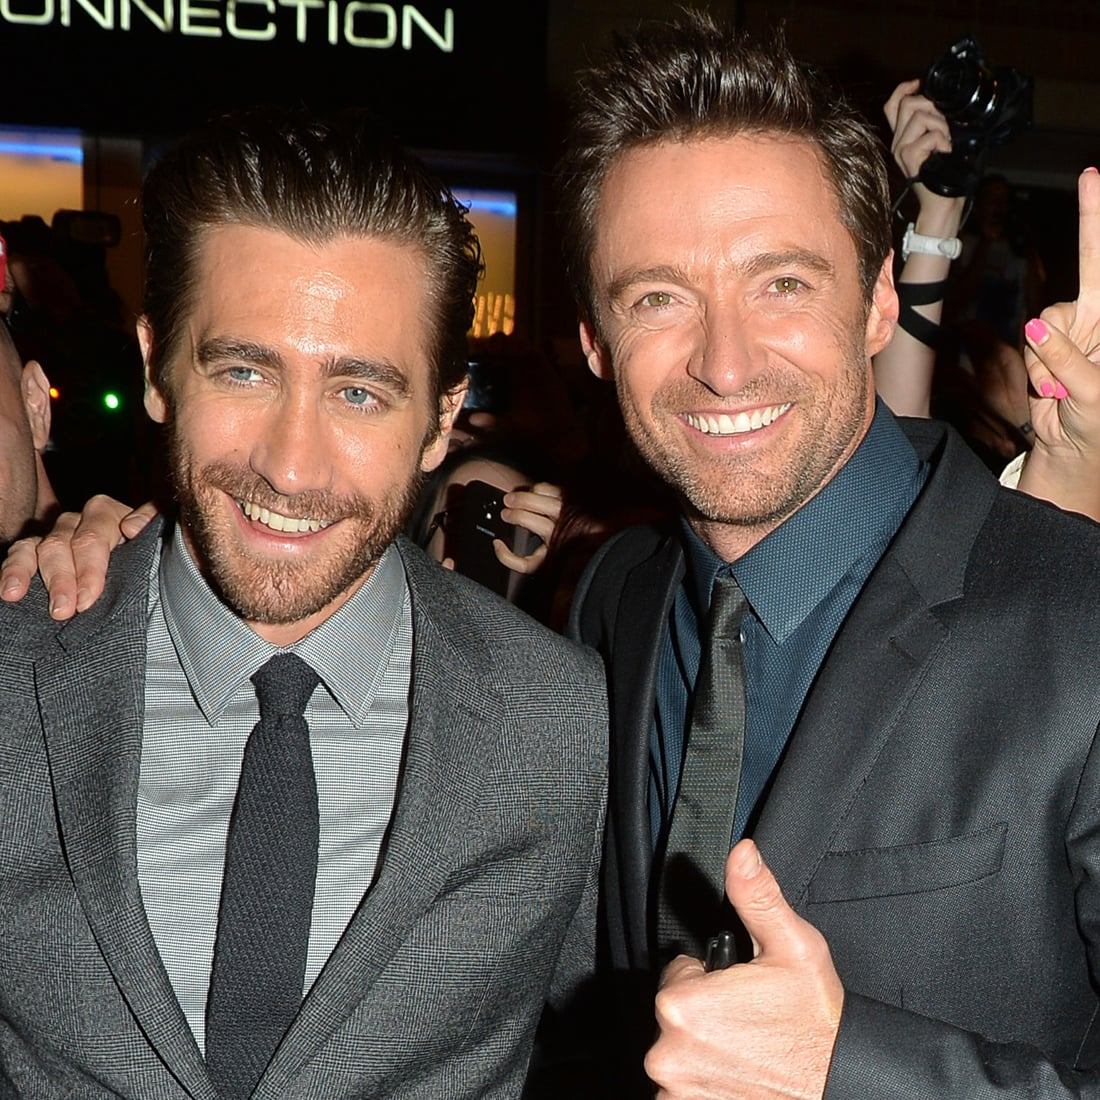 Prisoners Hugh Jackman And Jake Gyllenhaal Premiere Pictures